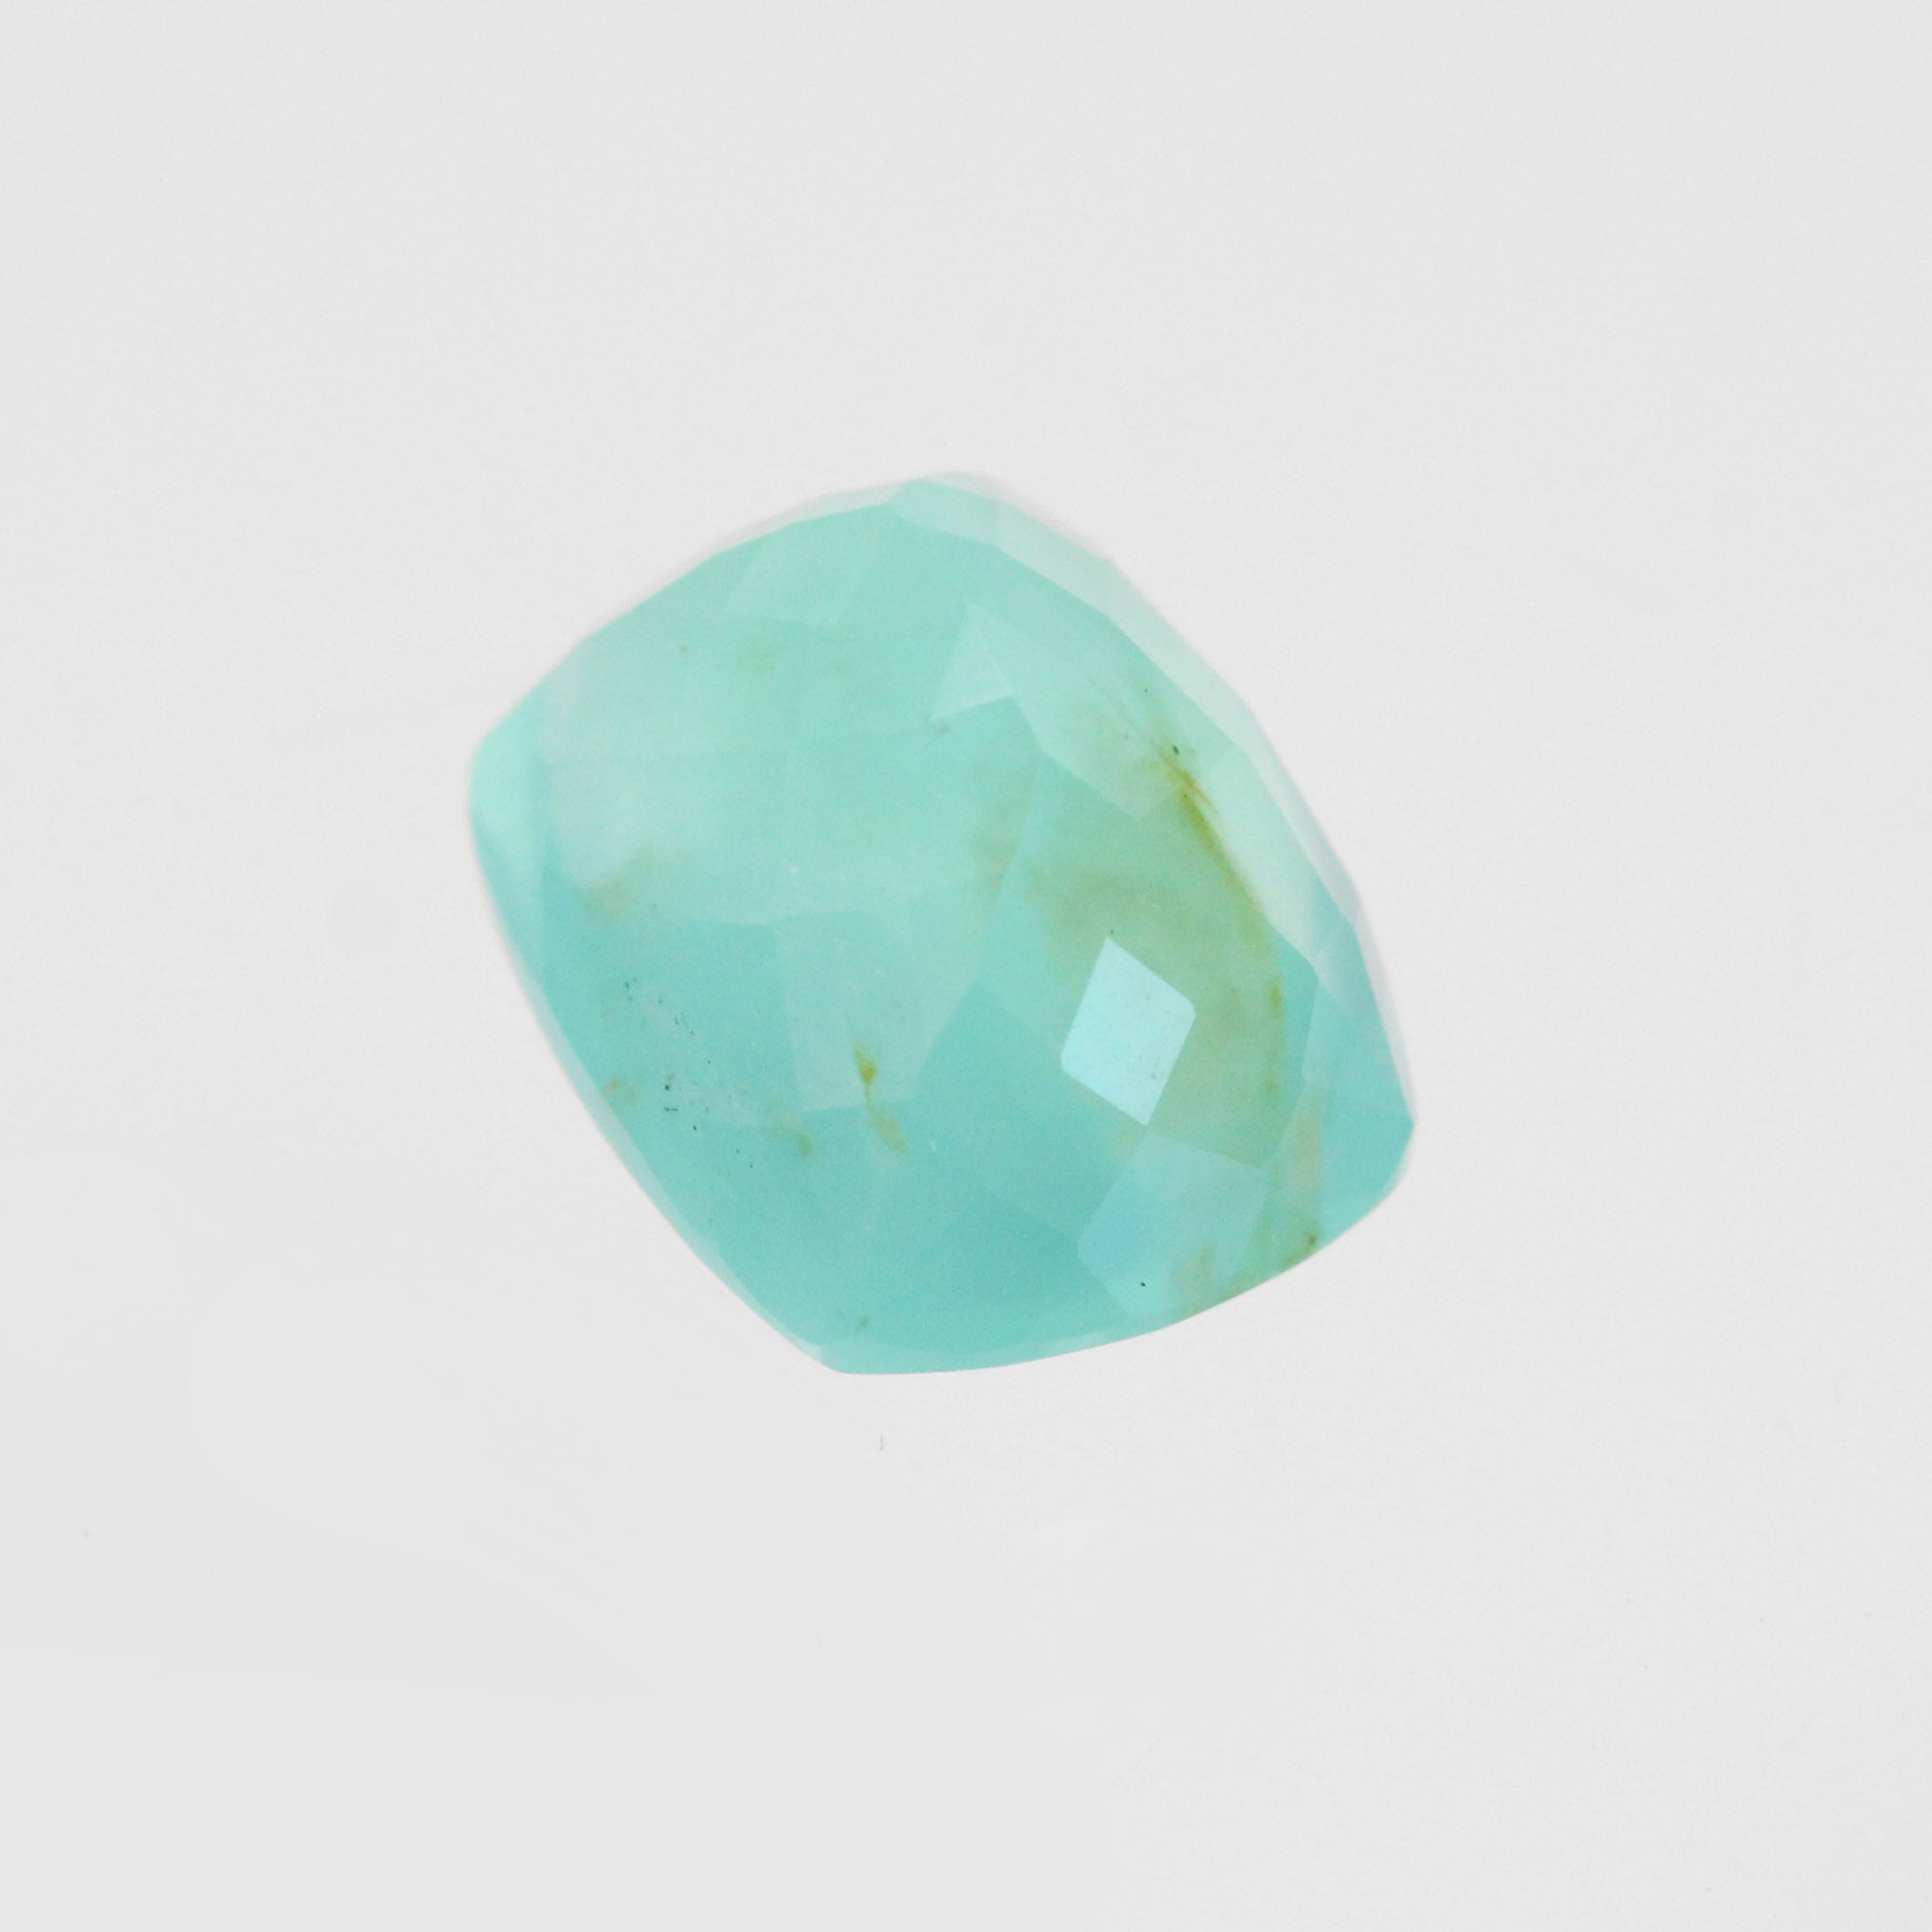 4.04ct Peruvian Opal for Custom Work - Inventory Code PO404